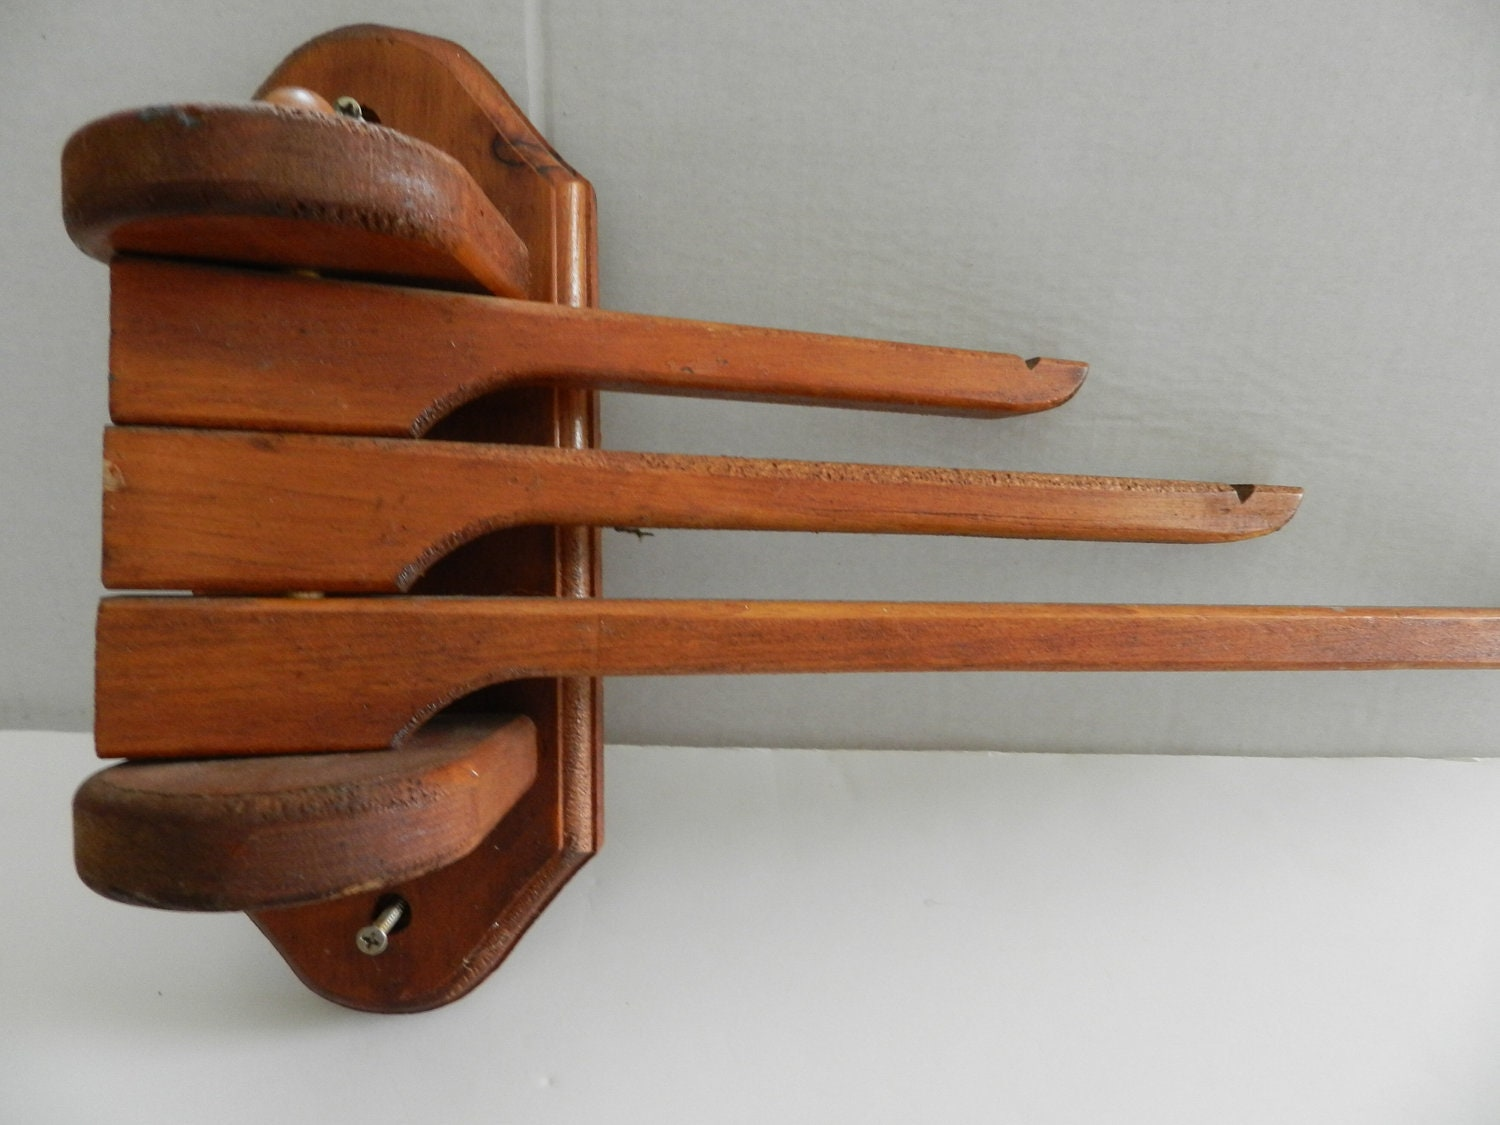 Wooden Linen Towel Drying Rack By Snowycreekdesigns On Etsy